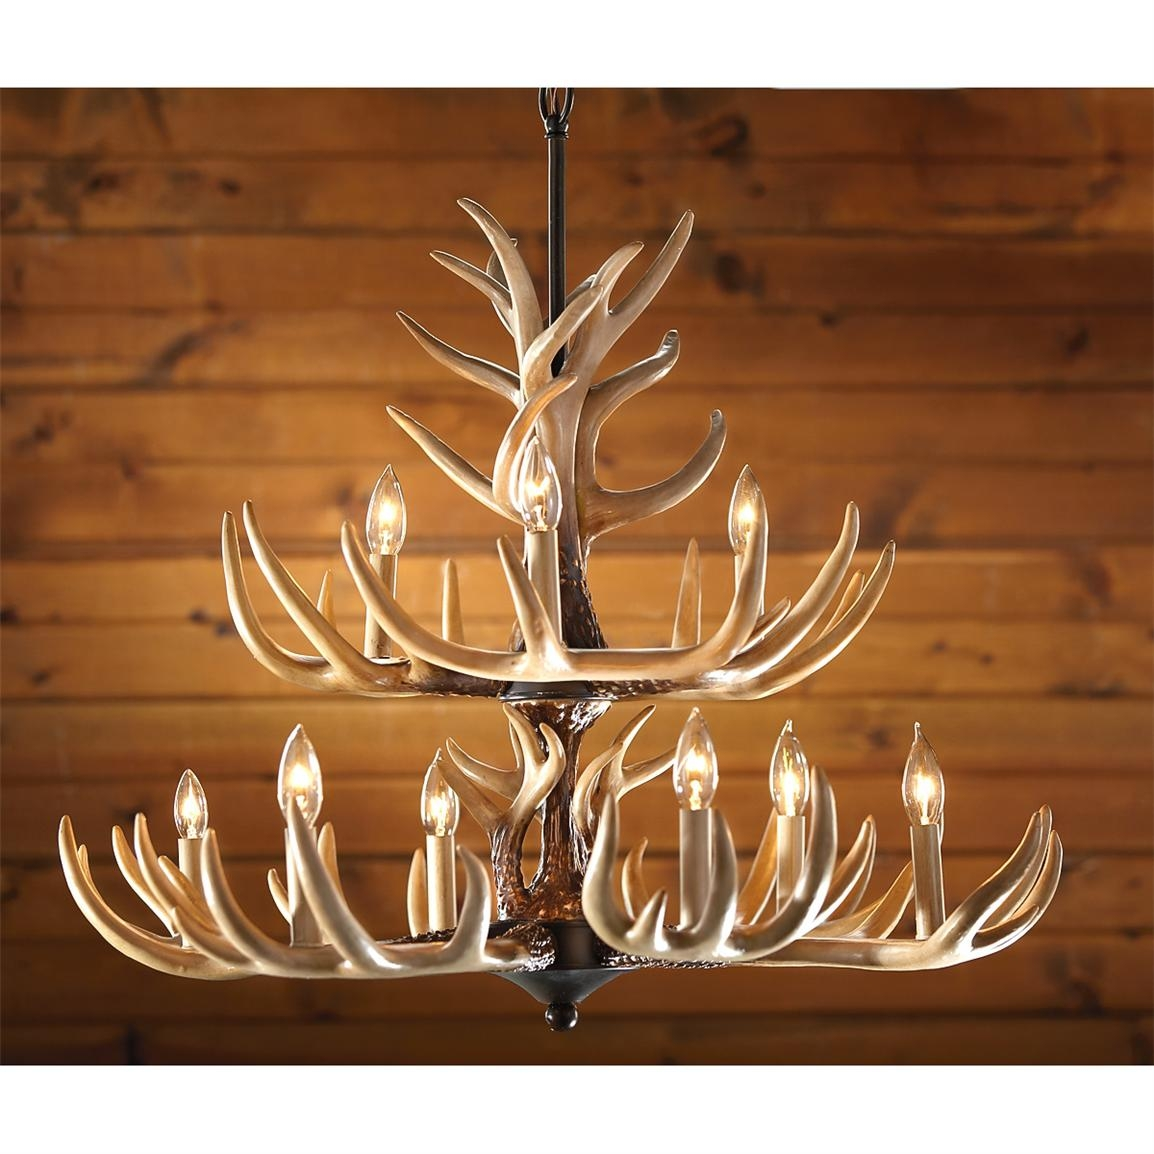 6 Light Antler Chandelier 210035 Lighting At Sportsmans Guide For Antler Chandelier (View 7 of 15)